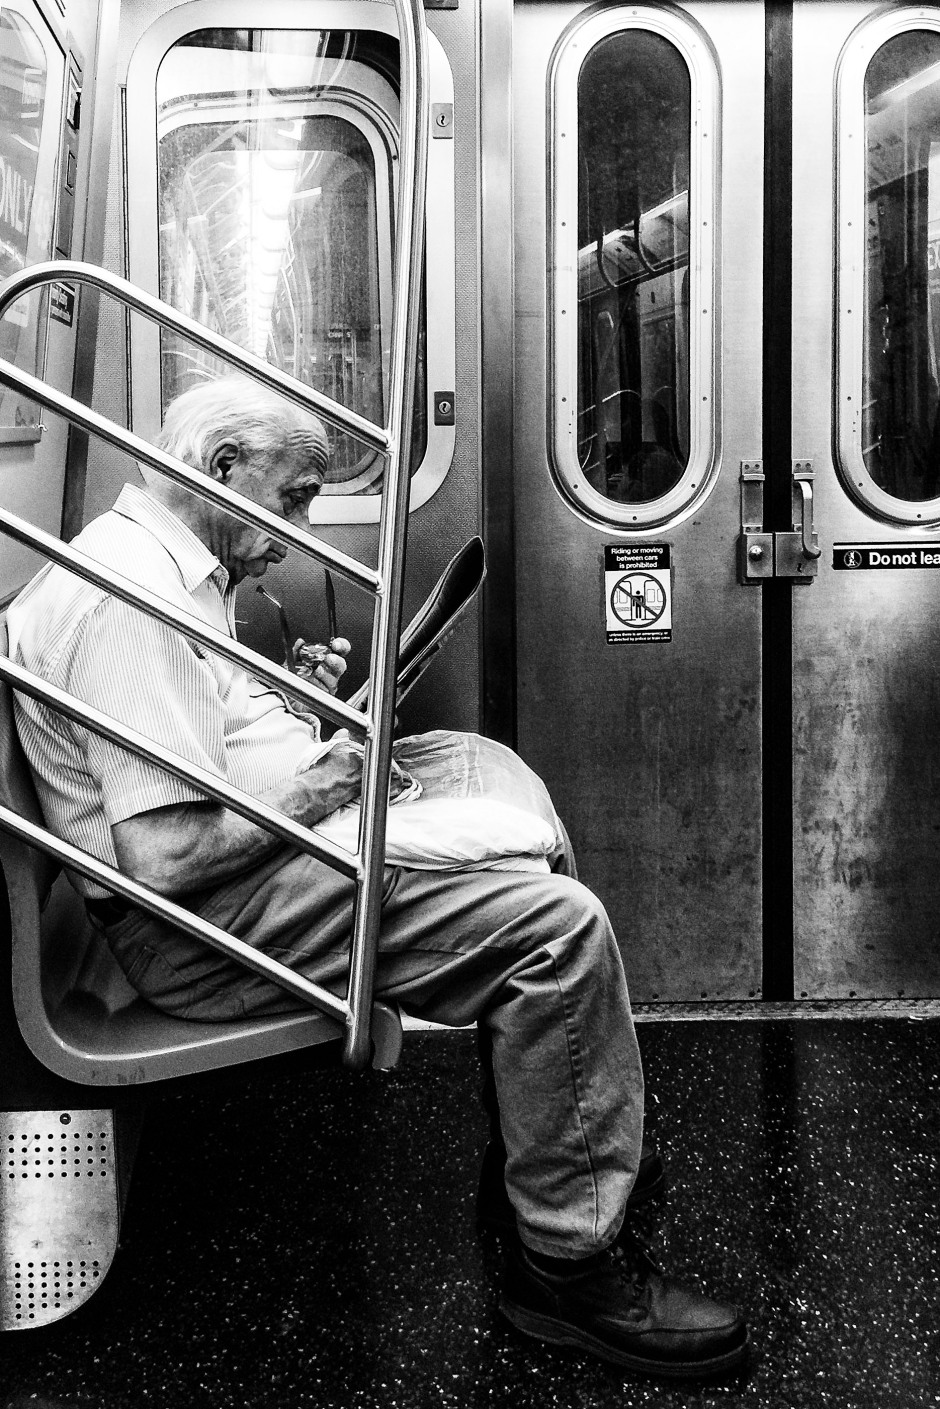 Check Your Pocket: You Already Own an Awesome Street Photography ...